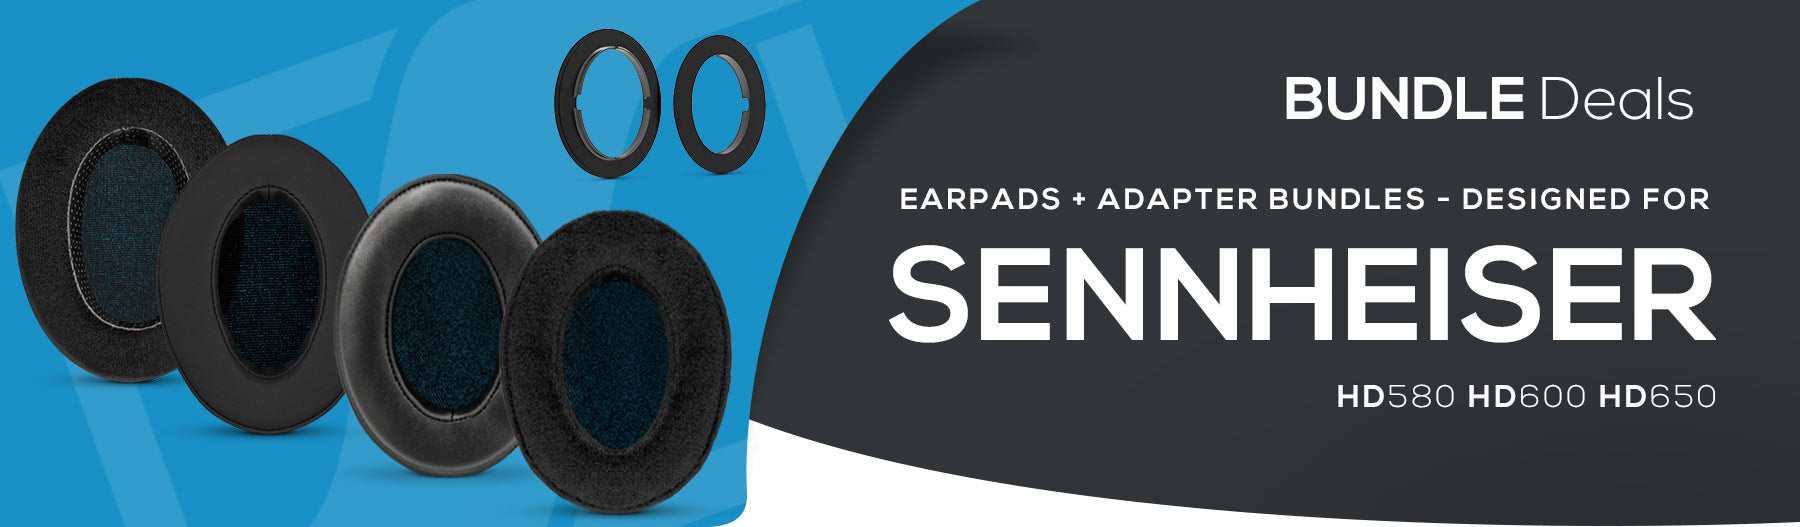 NEW: Earpad and adapter ring bundles for Sennheiser